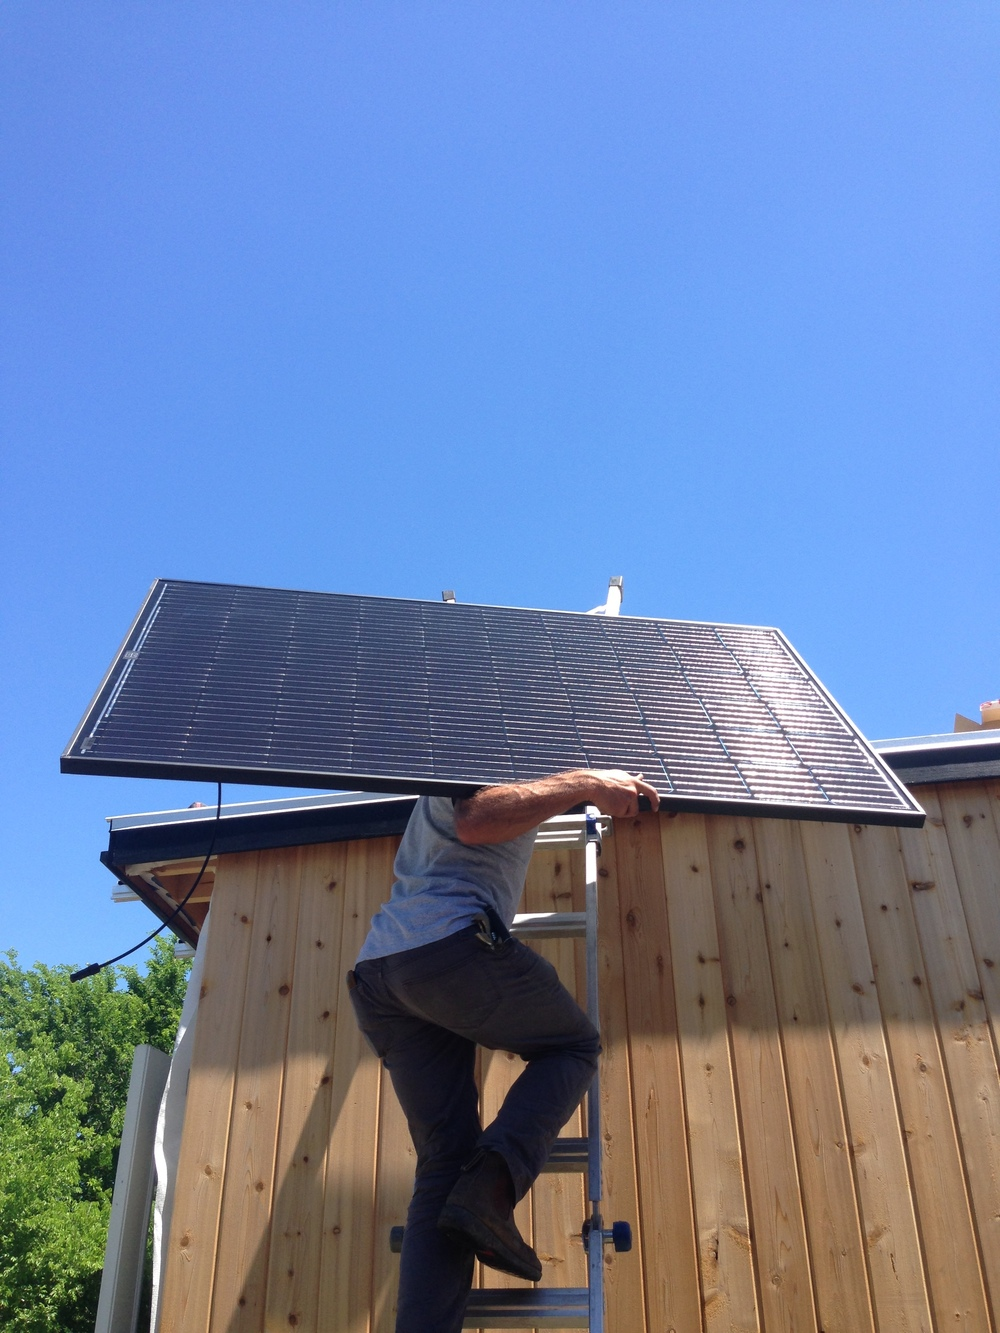 tiny-house-solar-panel-installation-earth-day-2016-2